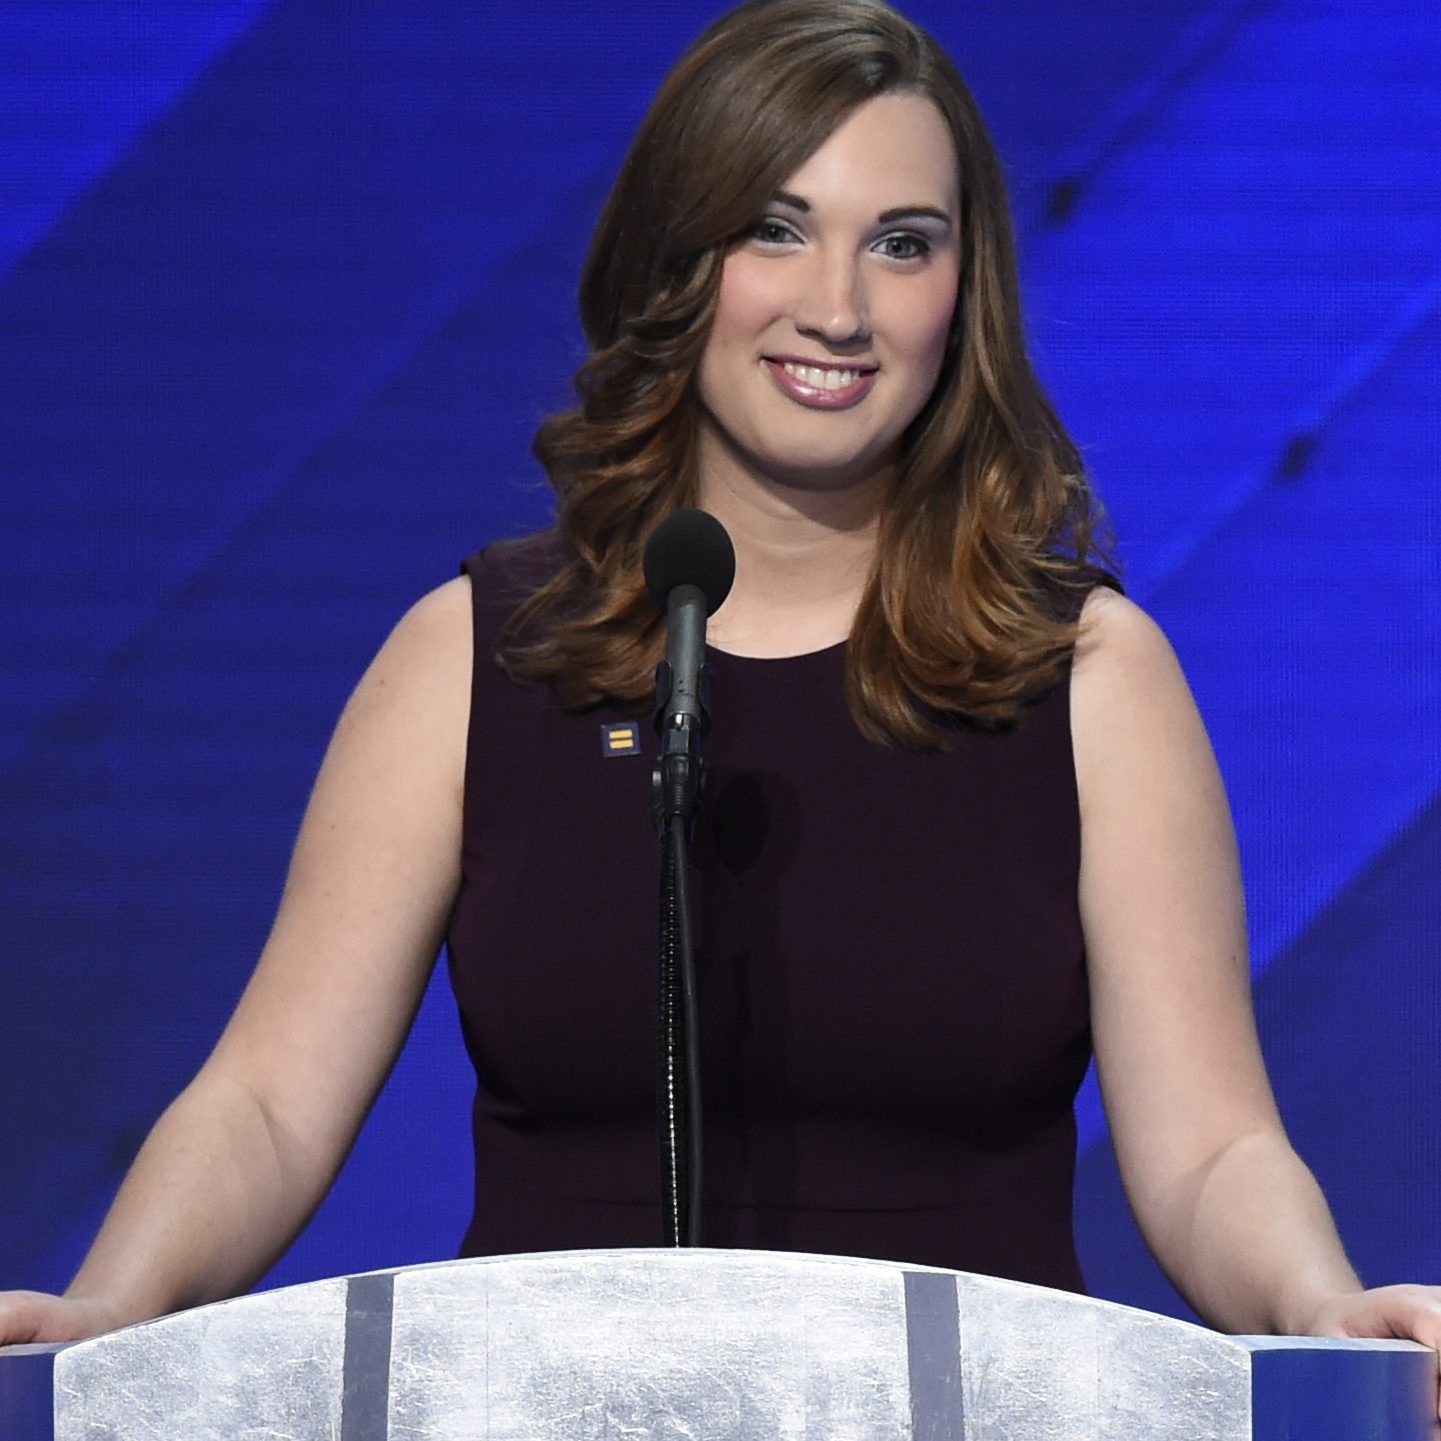 Sarah McBride addresses delegates on the fourth day of the Democratic National Convention on July 28, 2016 in Philadelphia, Pennsylvania.